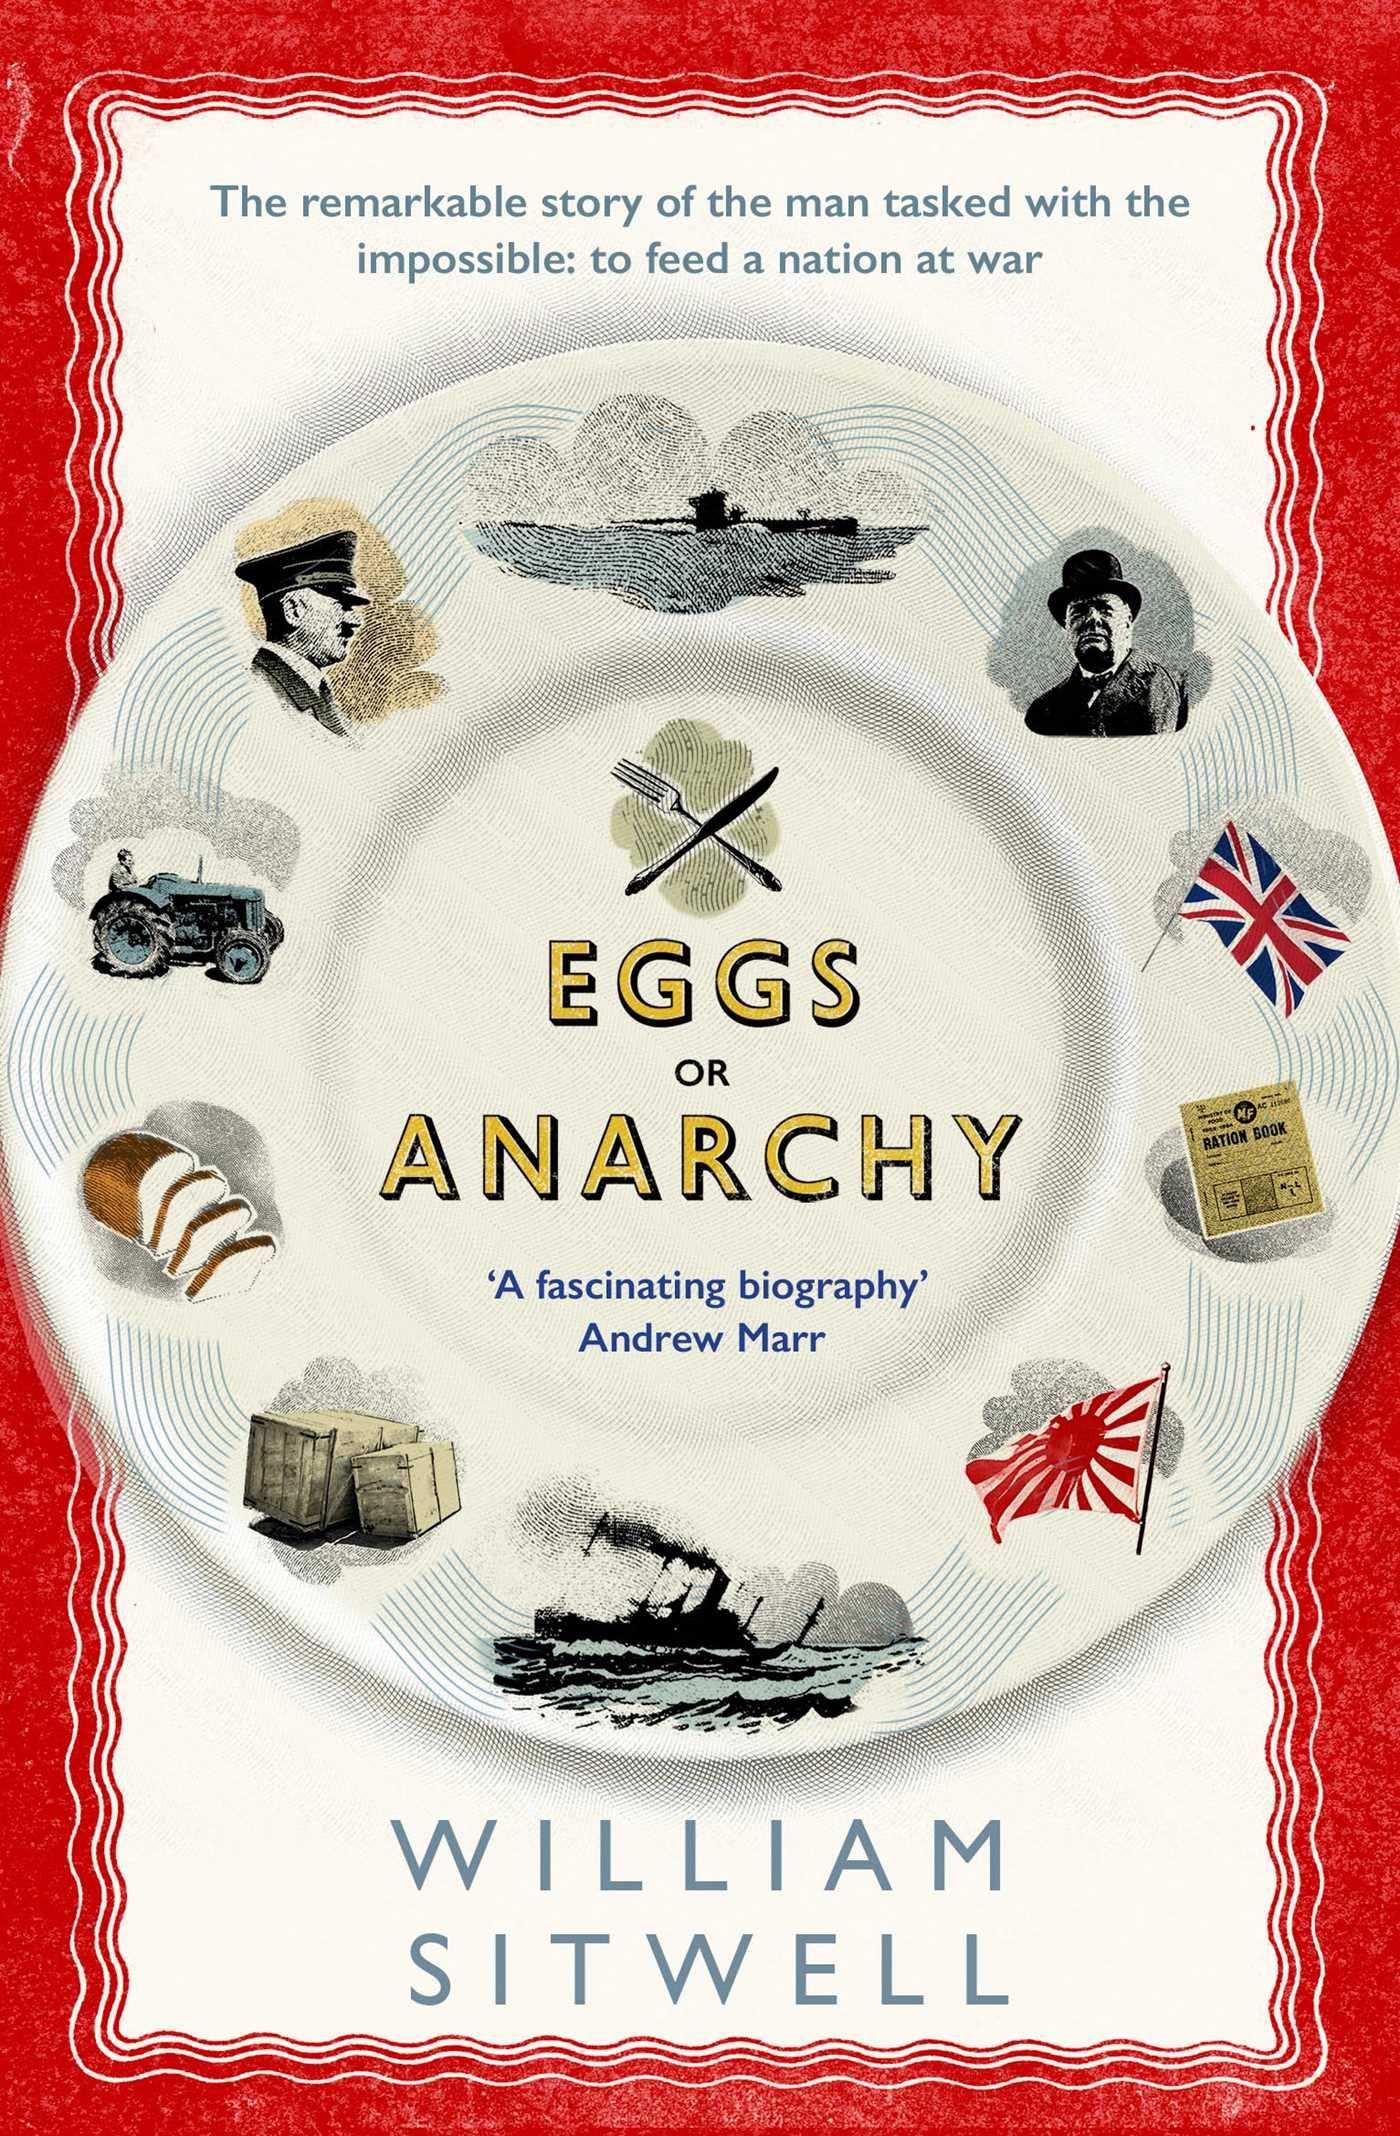 Image result for Eggs or Anarchy' by William Sitwell